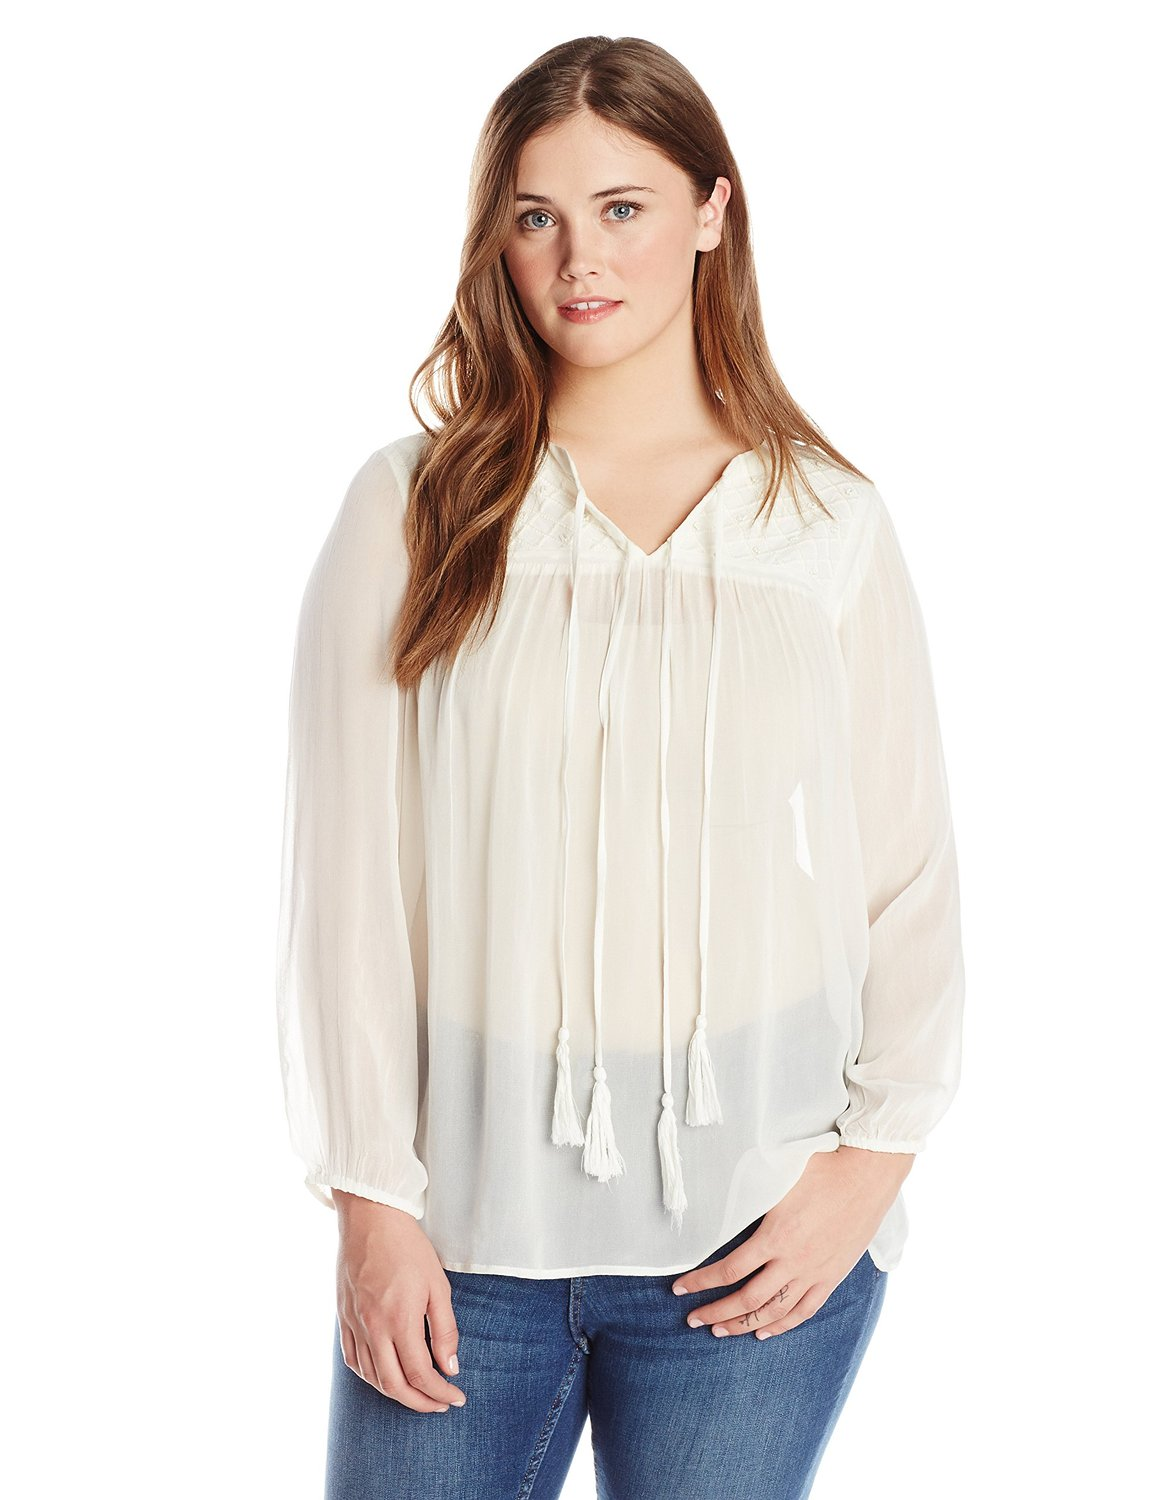 Size ivory tassle top at amazon women's clothing store: